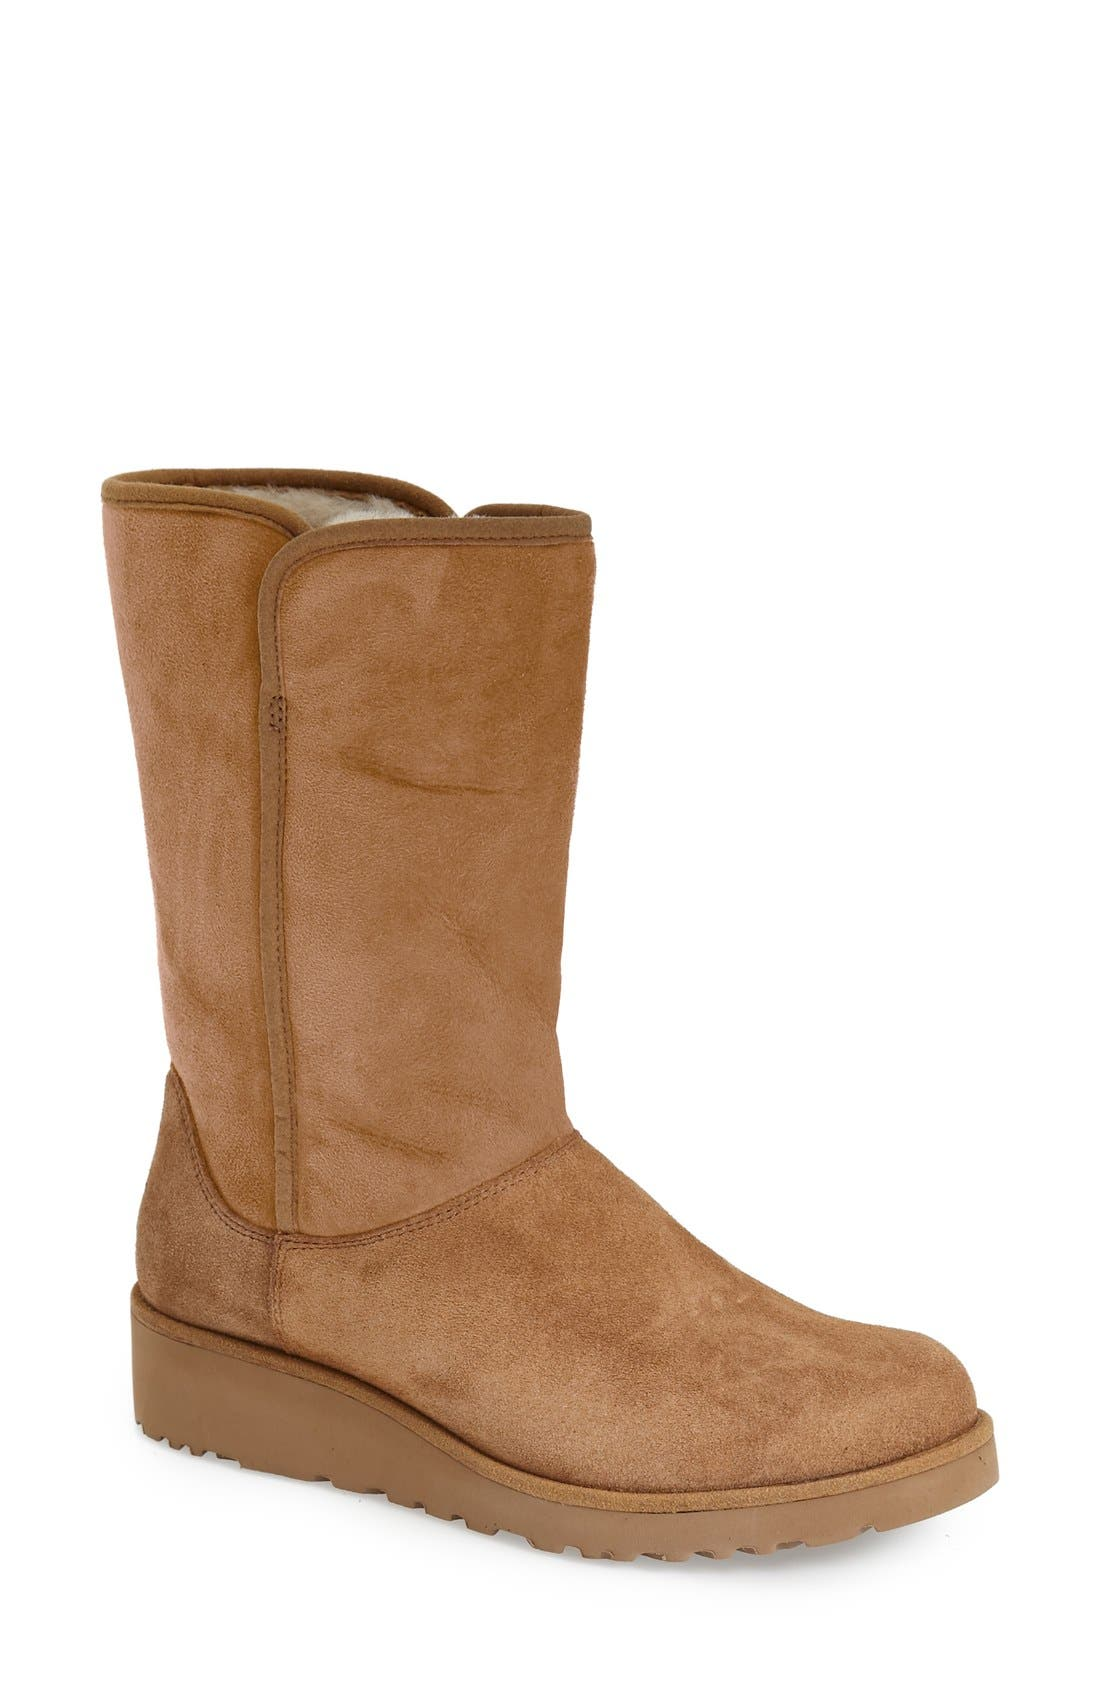 Amie - Classic Slim<sup>™</sup> Water Resistant Short Boot,                             Main thumbnail 1, color,                             Chestnut Suede